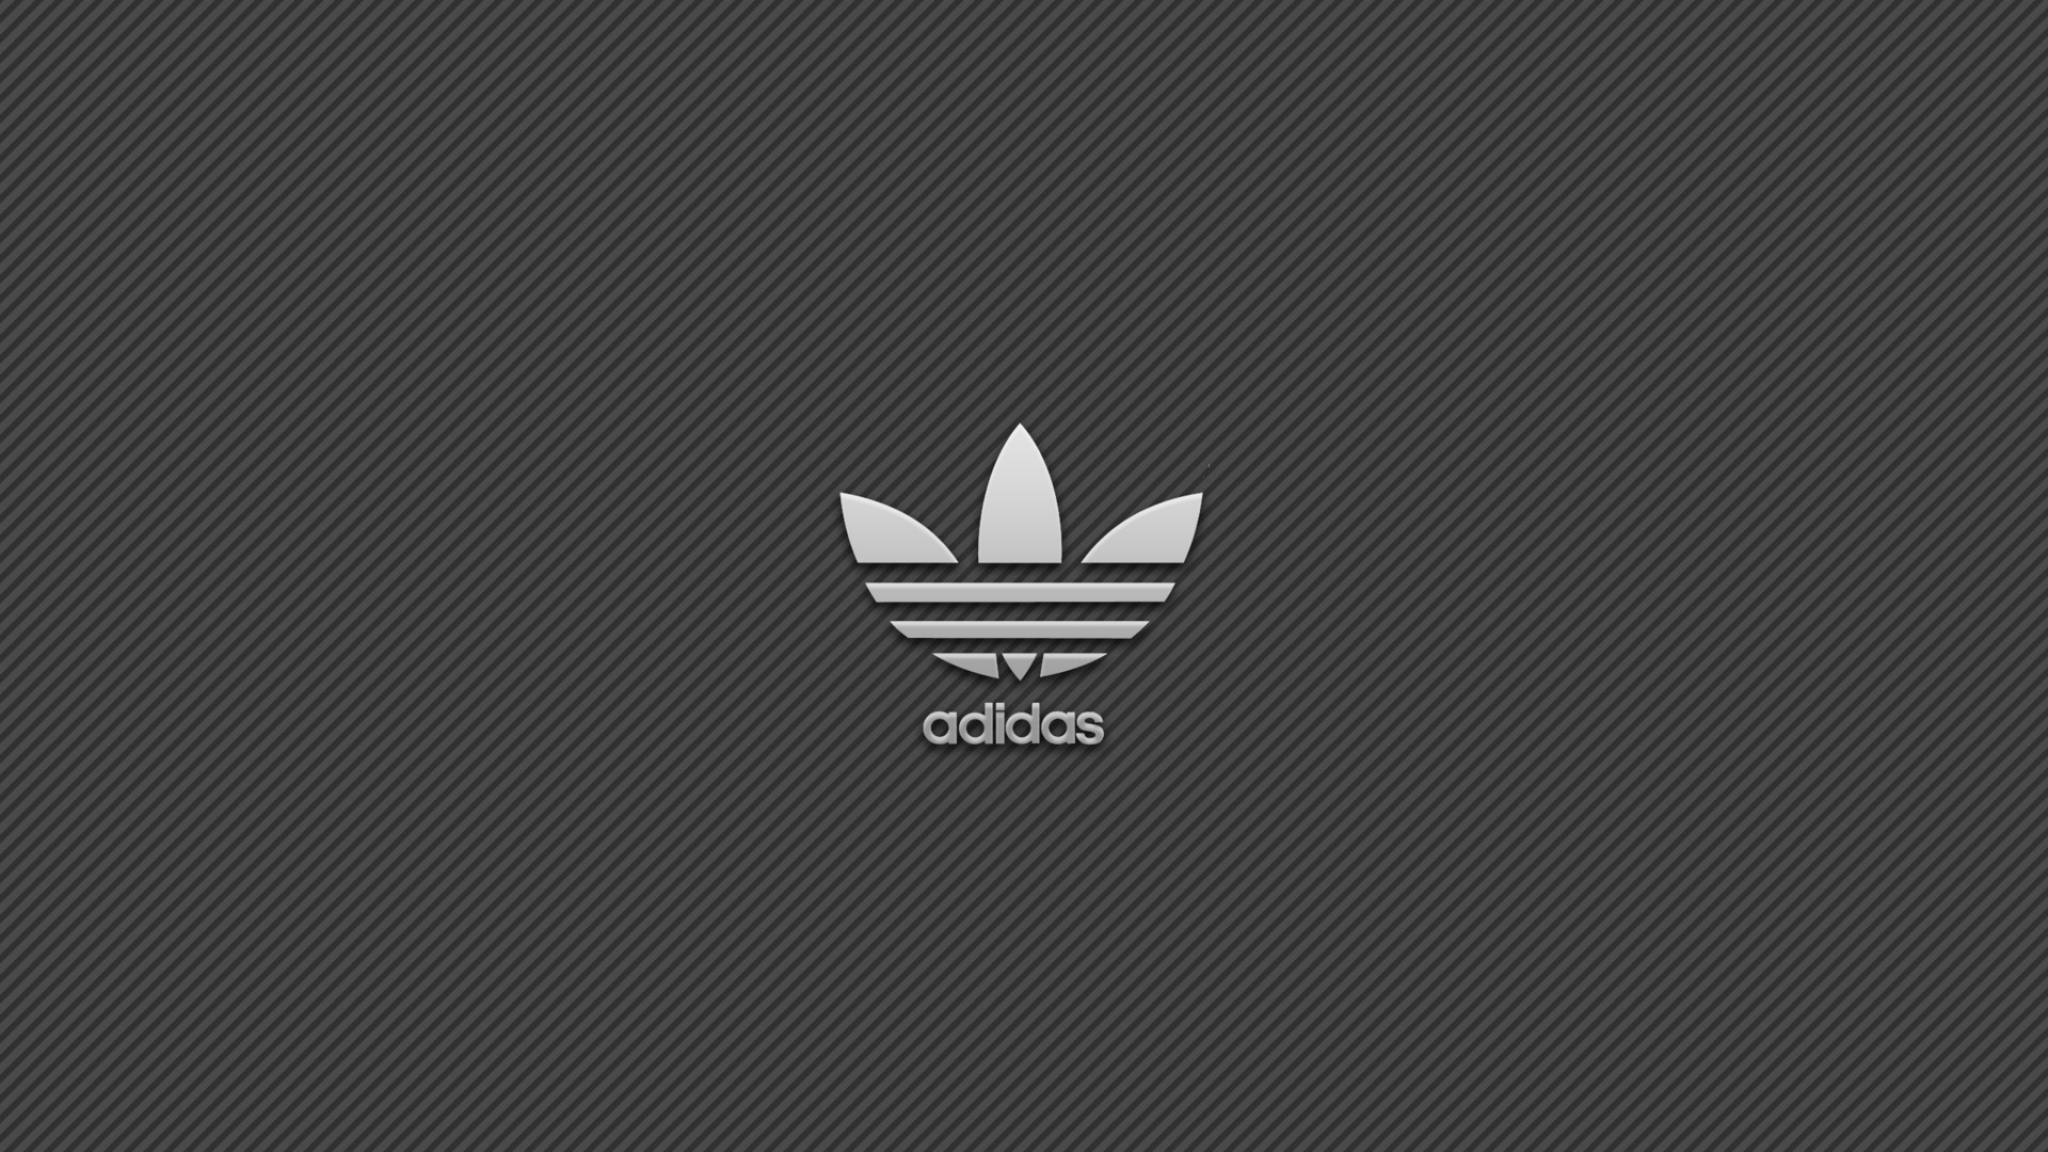 Adidas Wallpapers High Quality Download 2048x1152